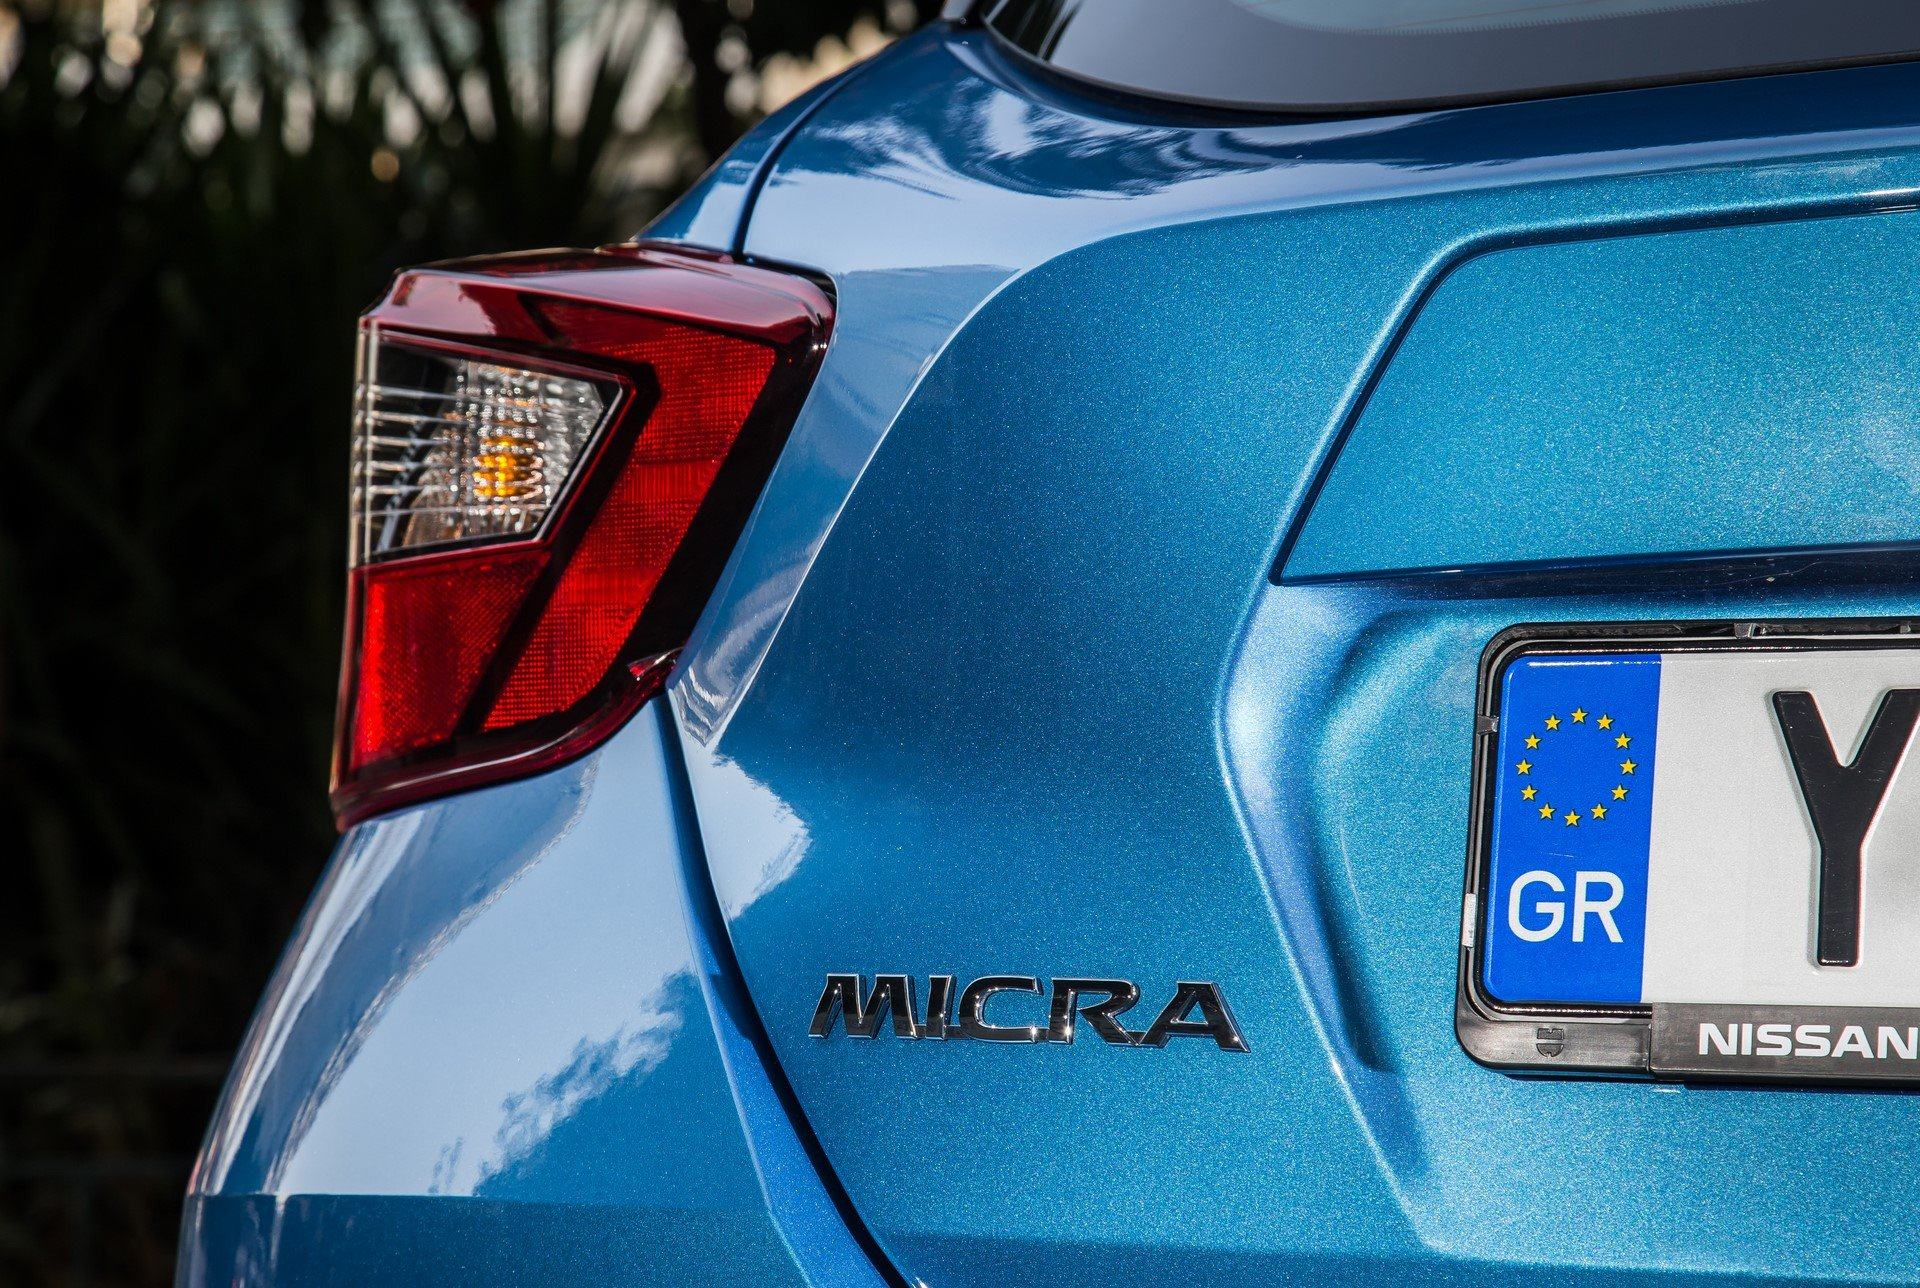 Nissan Micra 2019 Greek (87)